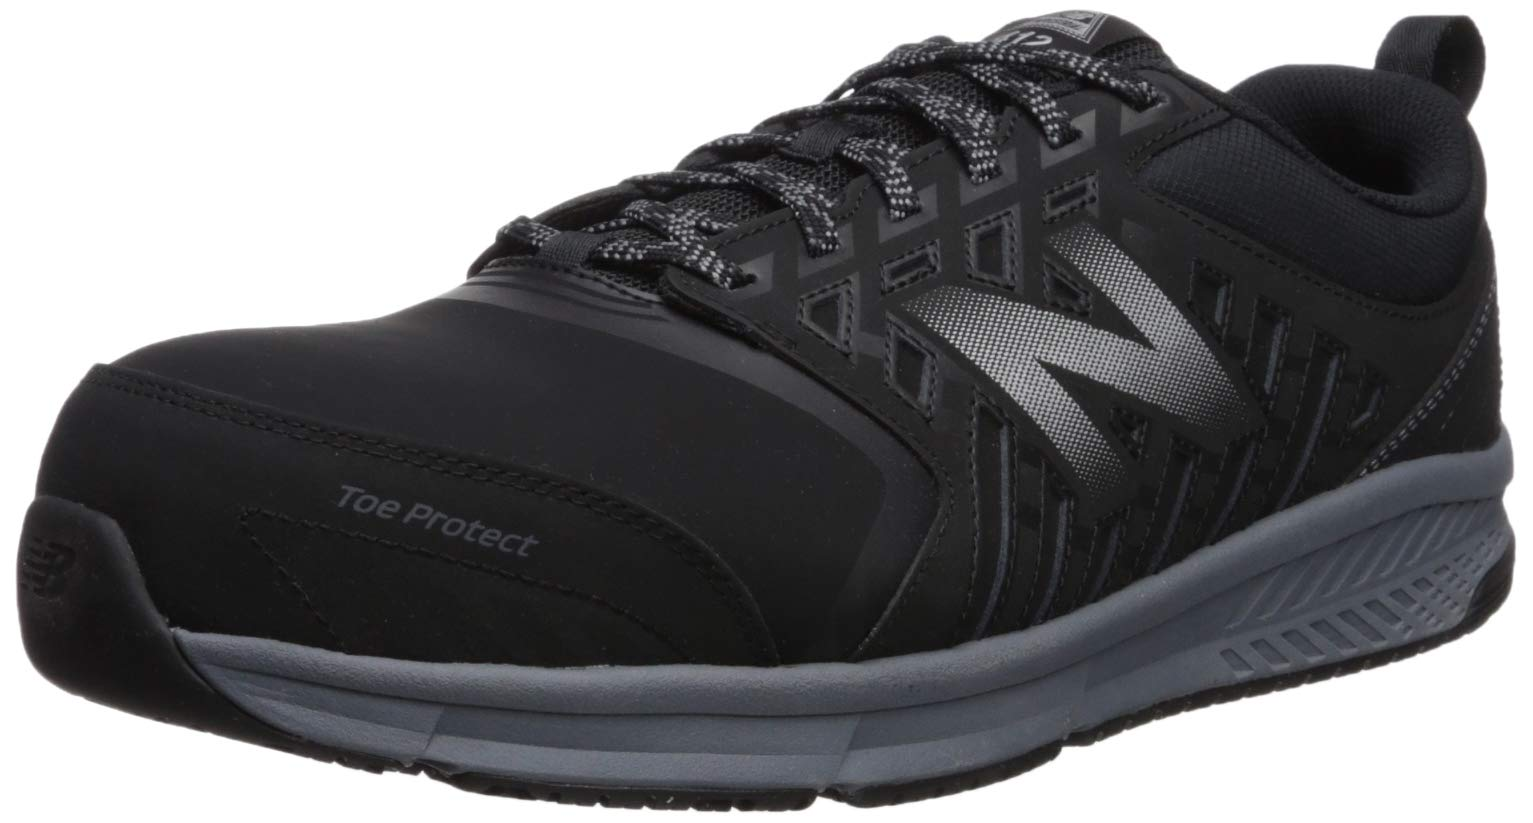 New Balance Men's 412v1 Work Industrial Shoe, Black/Silver, 9.5 2E US